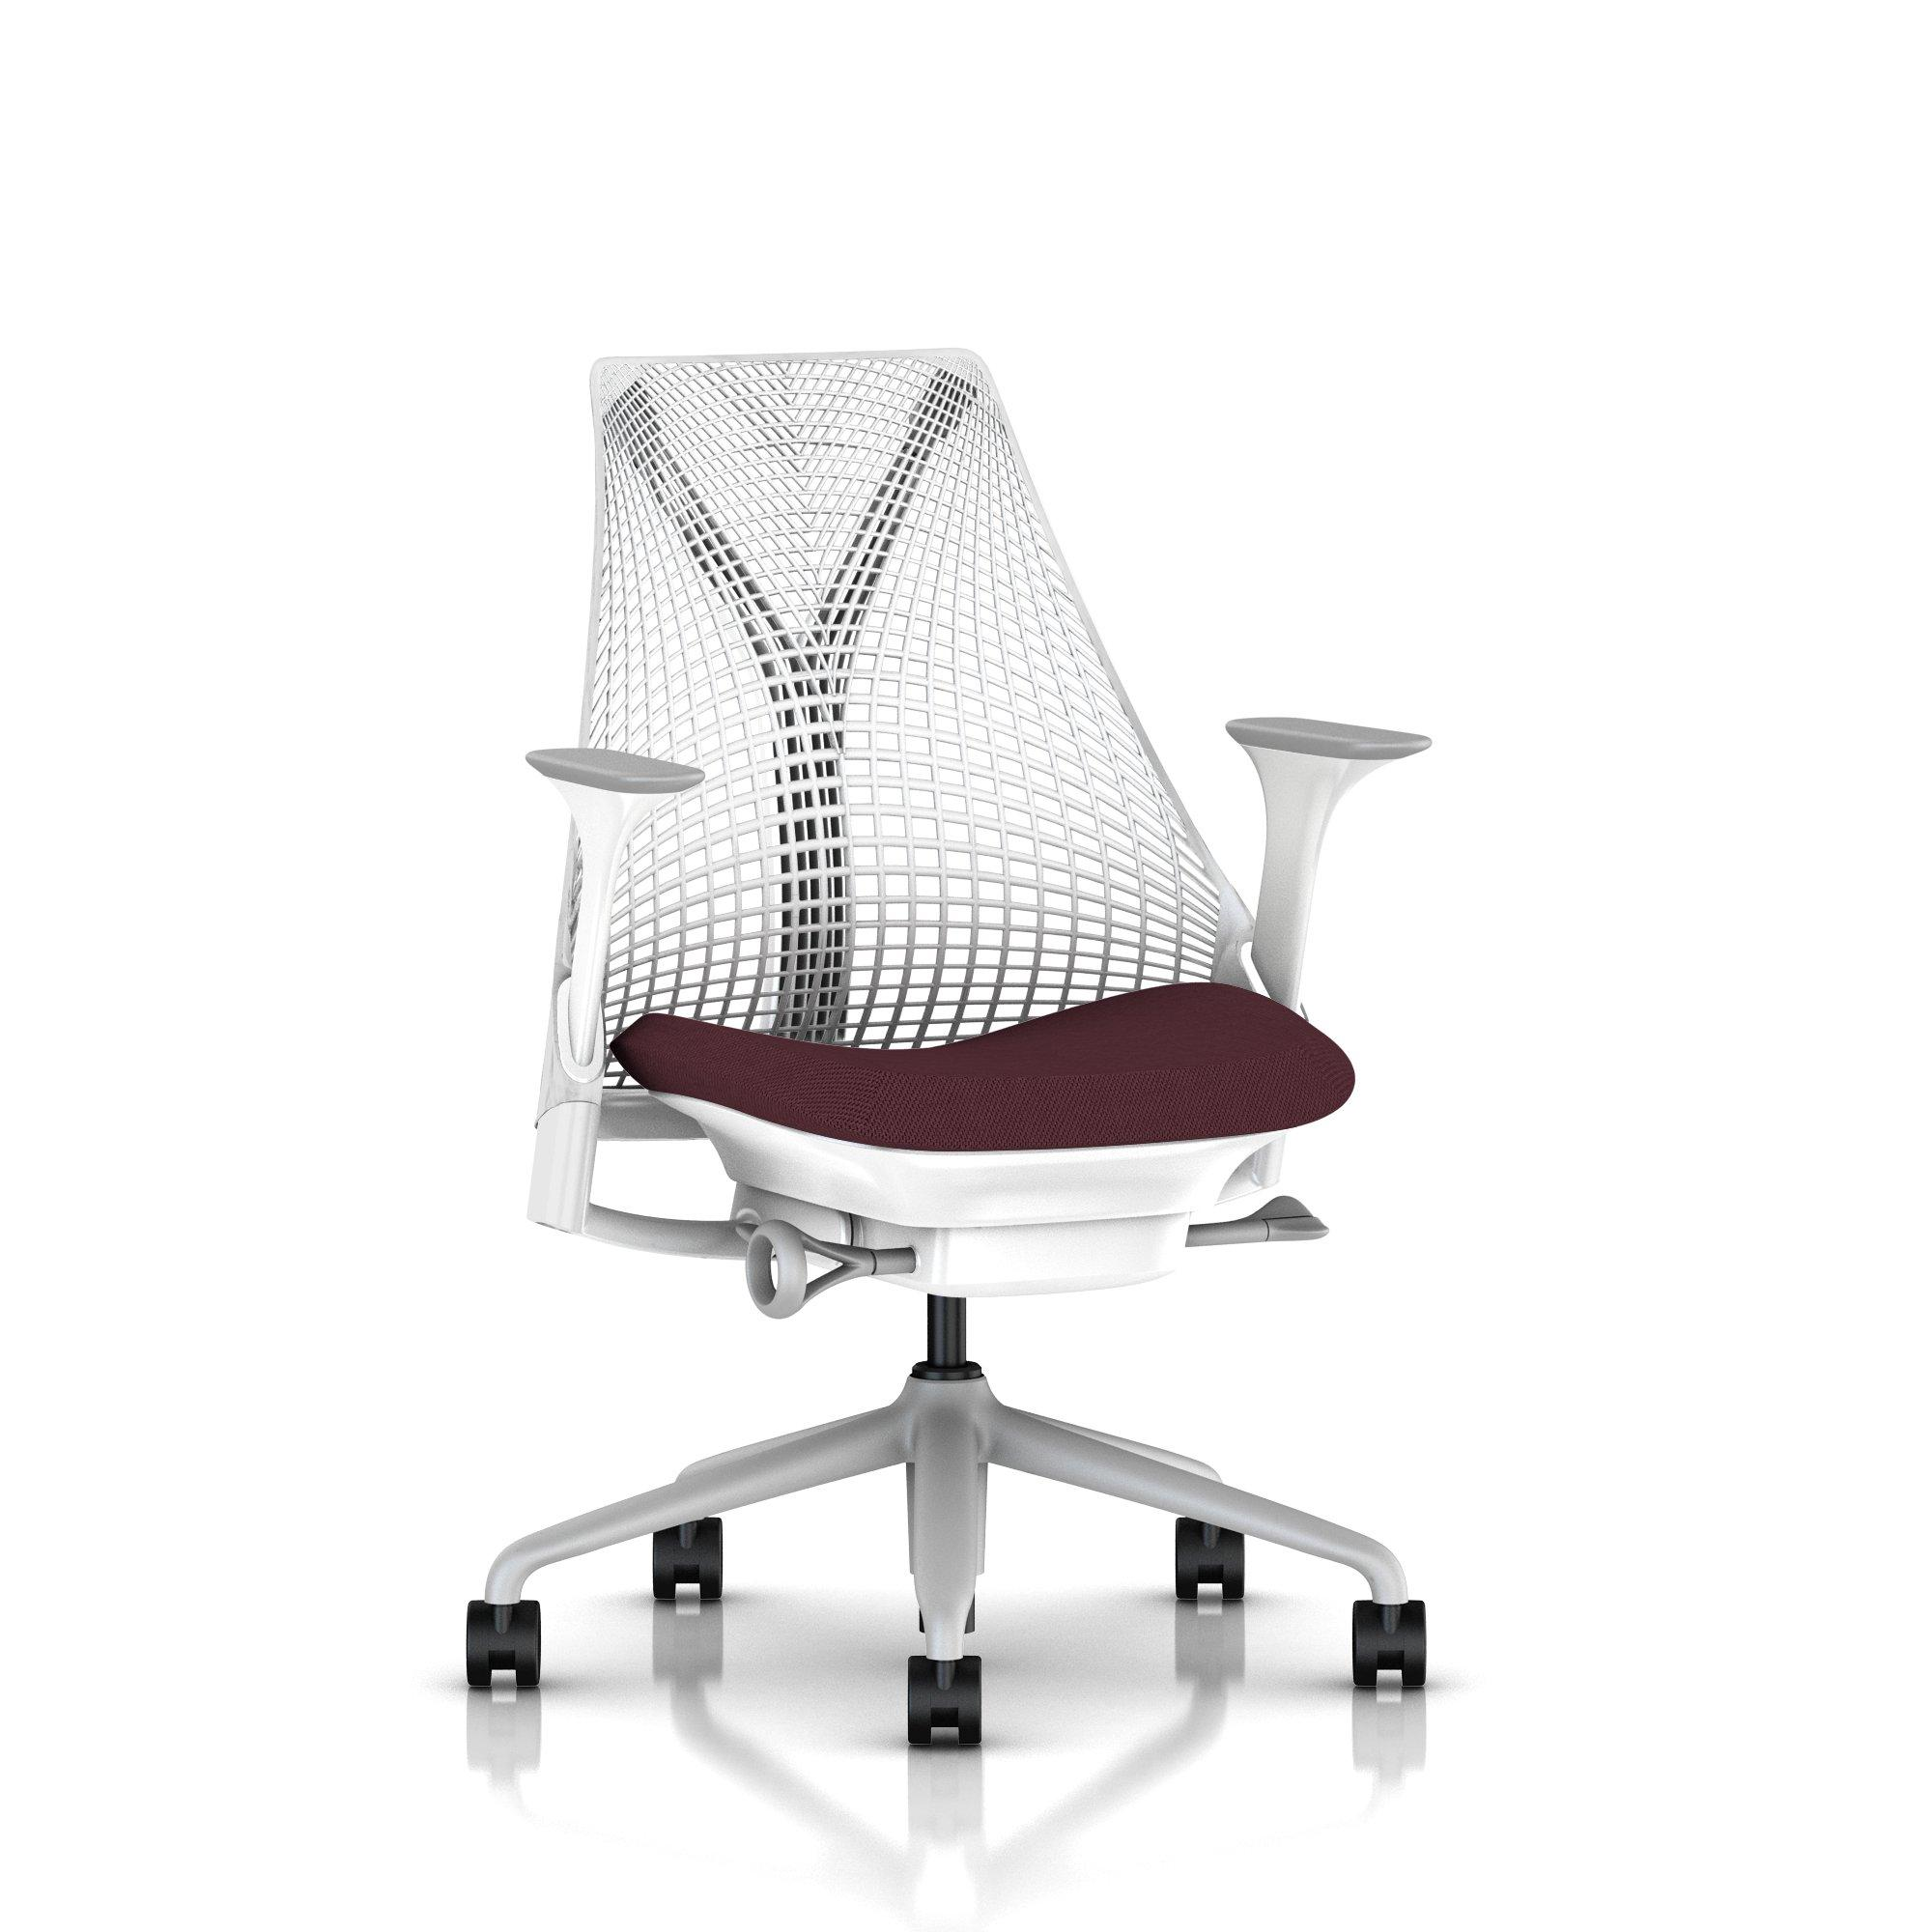 Fog Base with Studio White Y-Tower, Studio White Back, Cosmo Quince Fabric Seat, Fog Armpad, Tilt Limiter with Seat Angle Adjustment, Height Adjustable Arms, Adjustable Seat Depth, Non-Adjustable Back Support, 2.5-inch Standard Carpet Casters